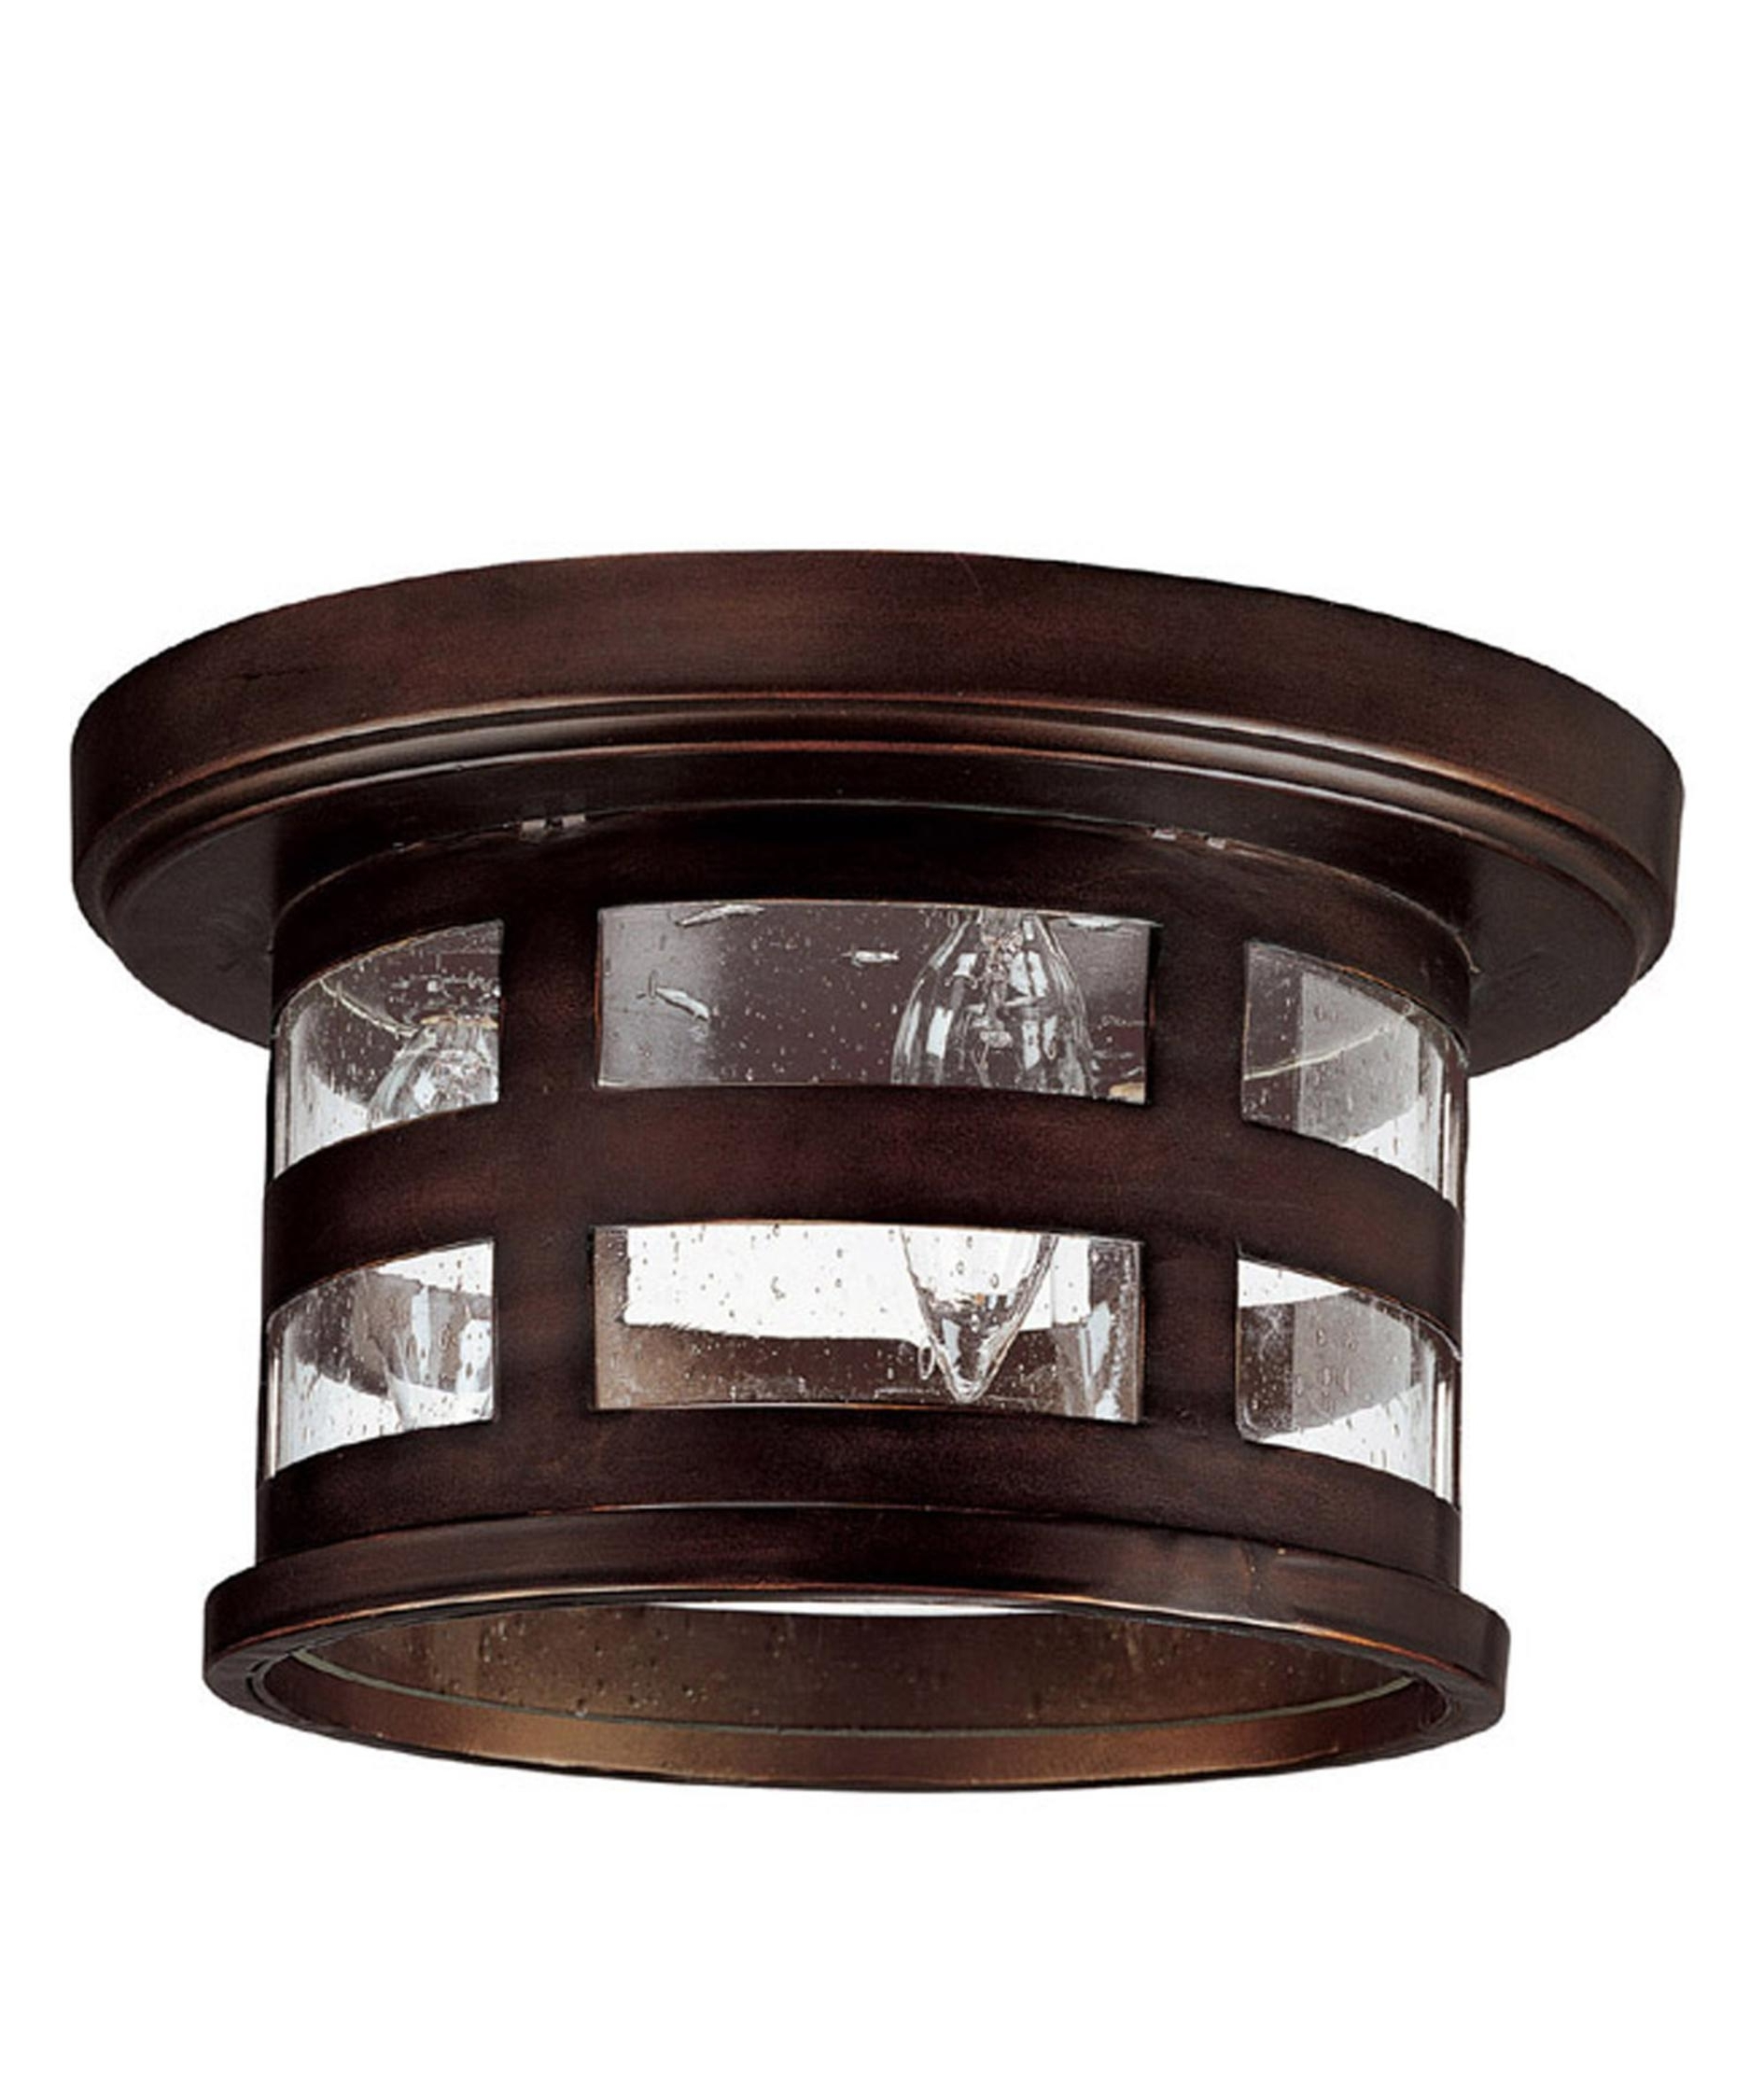 Capital Lighting 9956 Mission Hills 11 Inch Wide 3 Light Outdoor With Regard To Most Current Outdoor Ceiling Flush Lights (View 11 of 20)